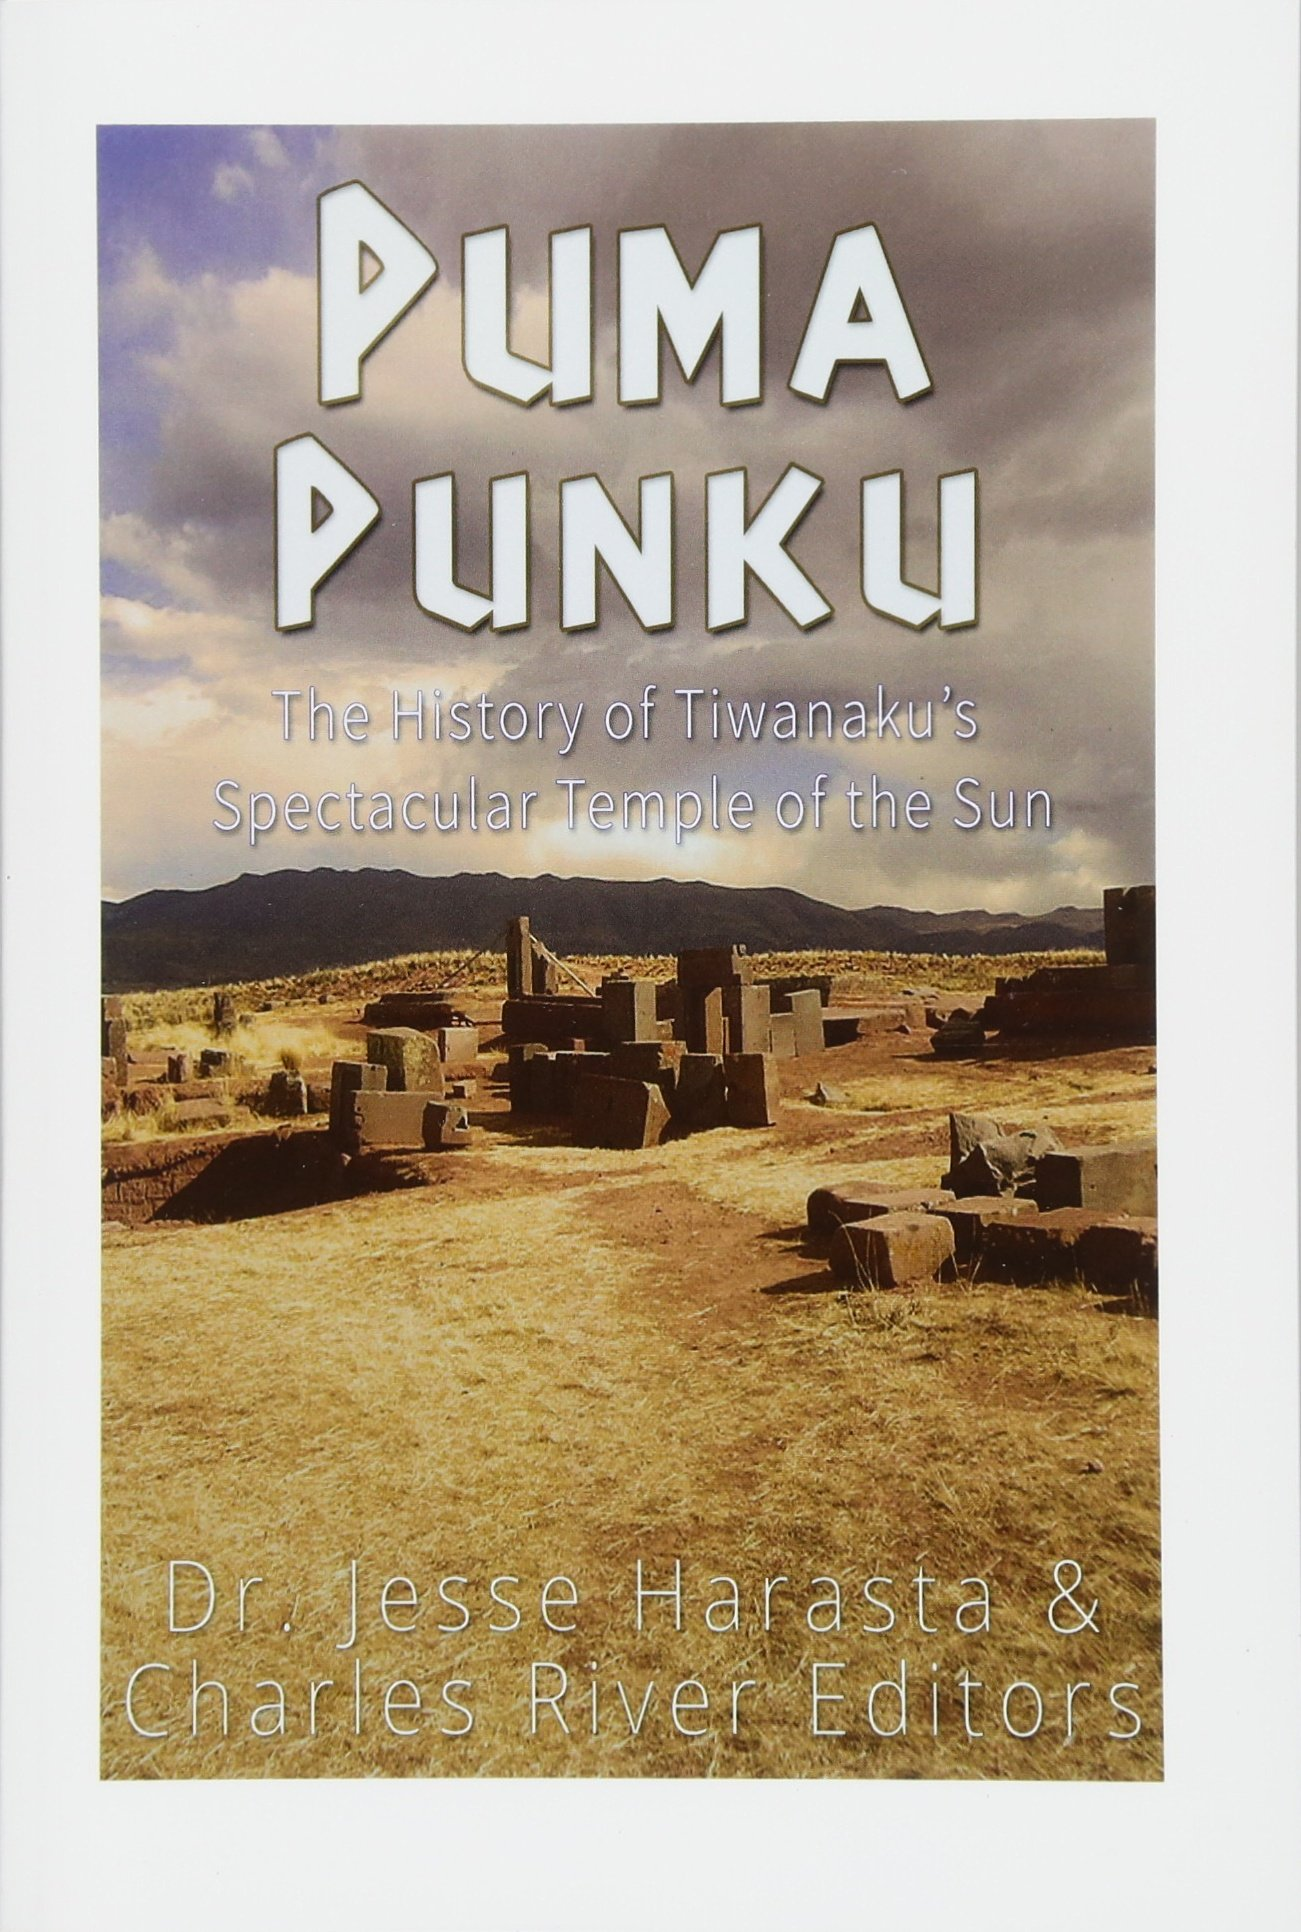 Puma Punku The History Of Tiwanakus Spectacular Temple Of The Sun